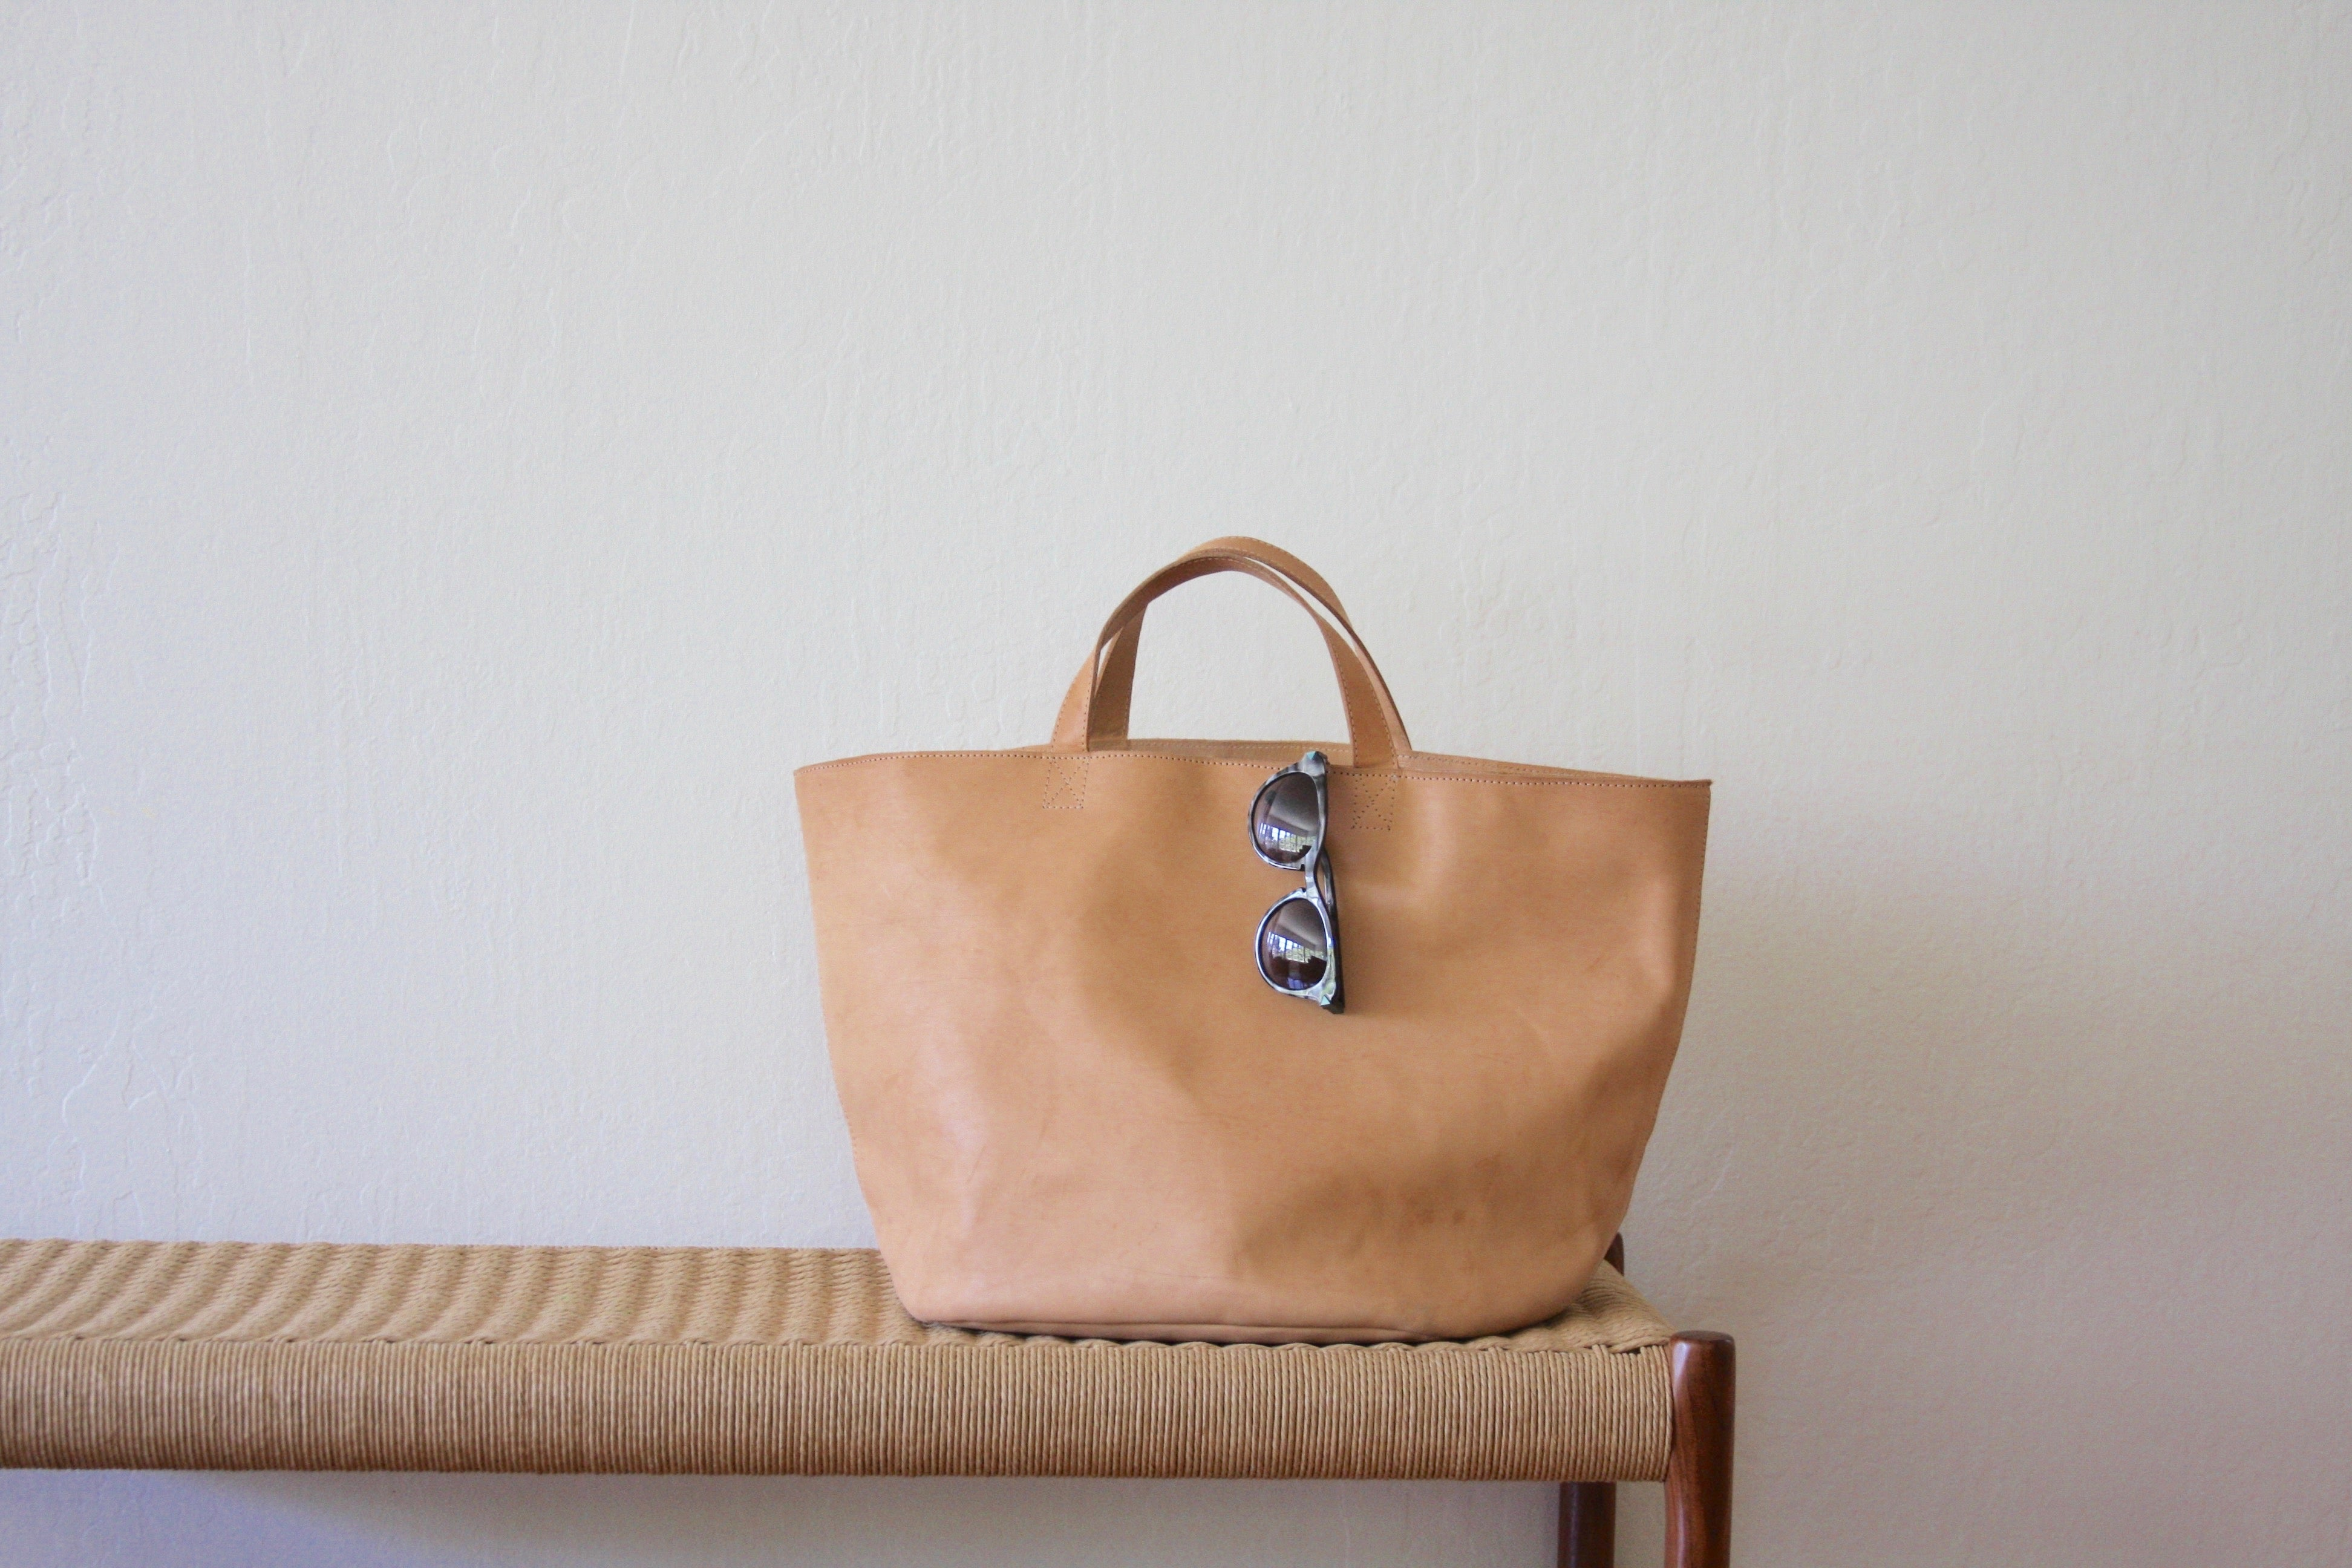 Shopper Tote in Natural Leather. Handcrafted in Argentina